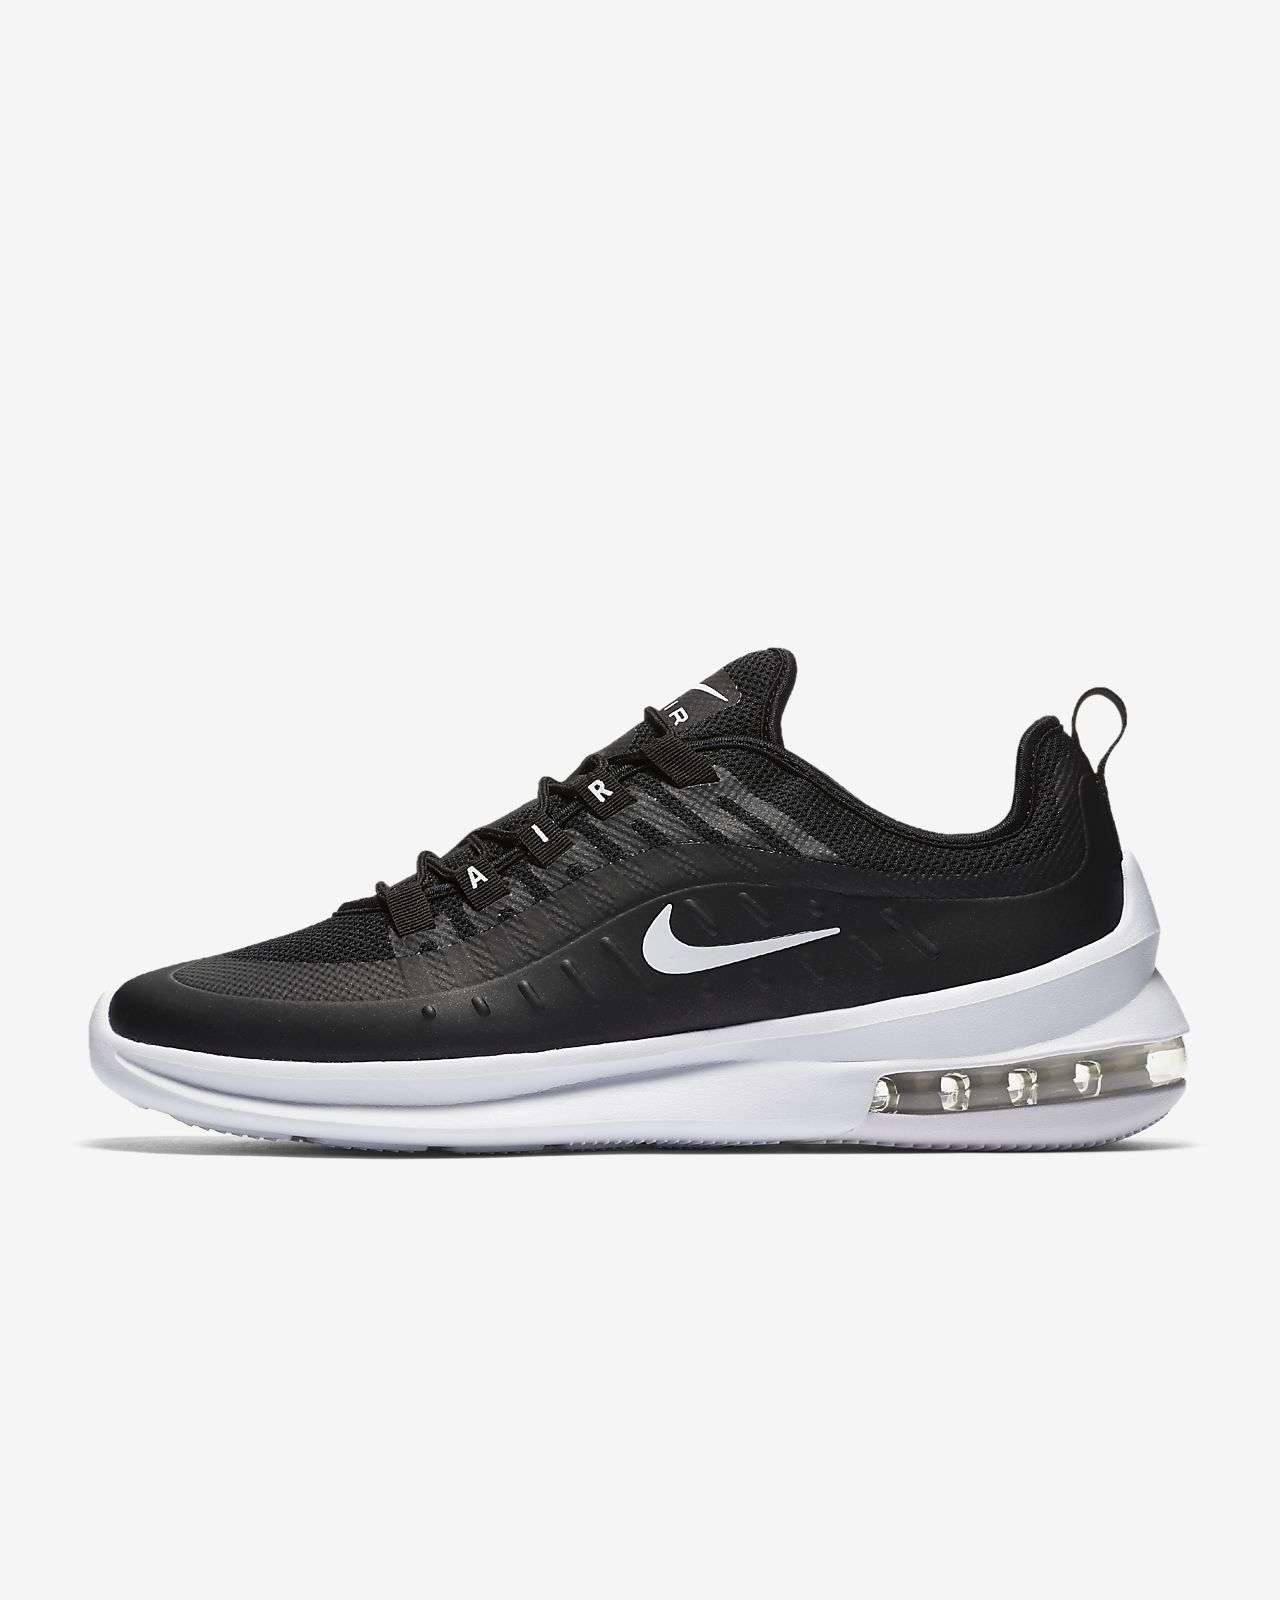 072838e7bb Nike Air Max Axis Men's Shoe. Nike.com